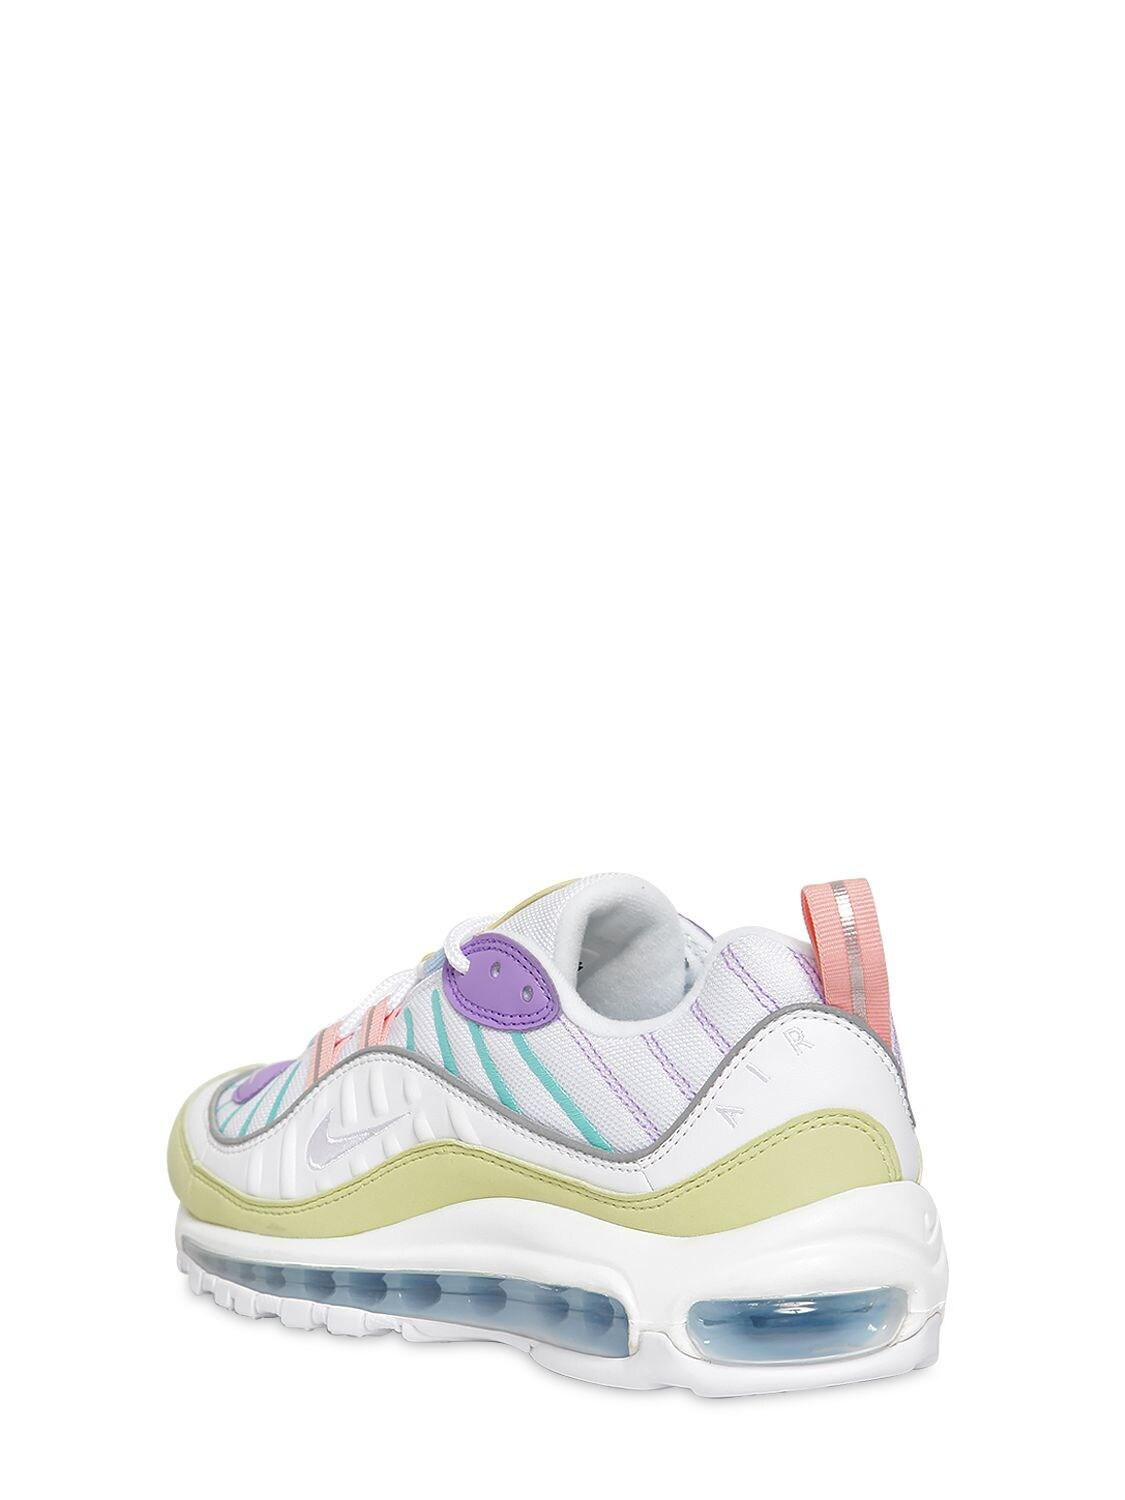 Nike Synthetic Pastel Air Max 98 Trainers in Green (White) - Lyst